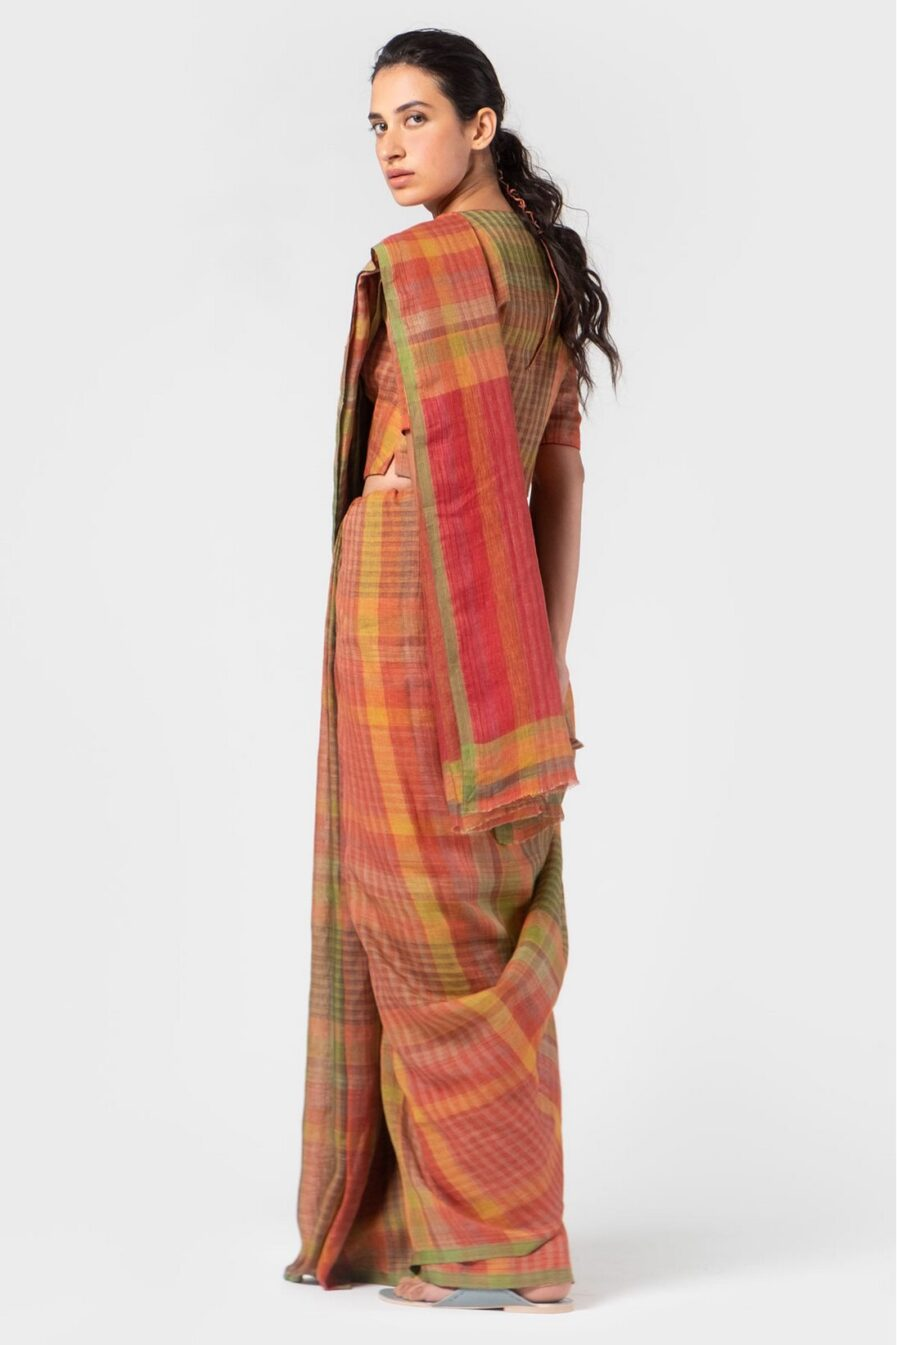 Anavila Persian multi plaid sari